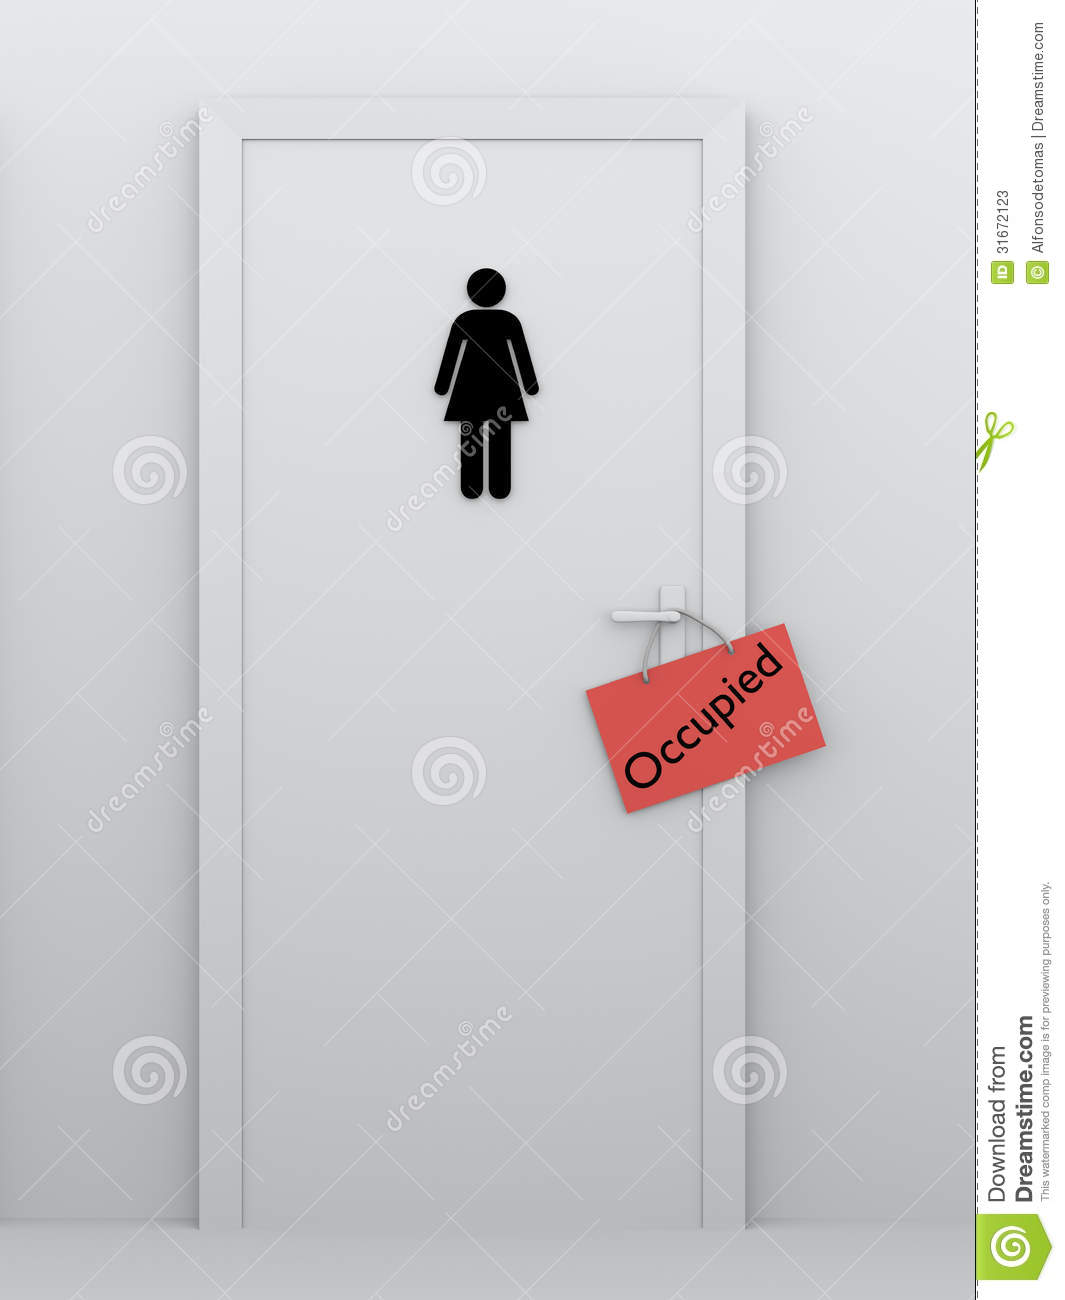 Toilet for women occupied stock illustration image of for Occupied bathroom sign